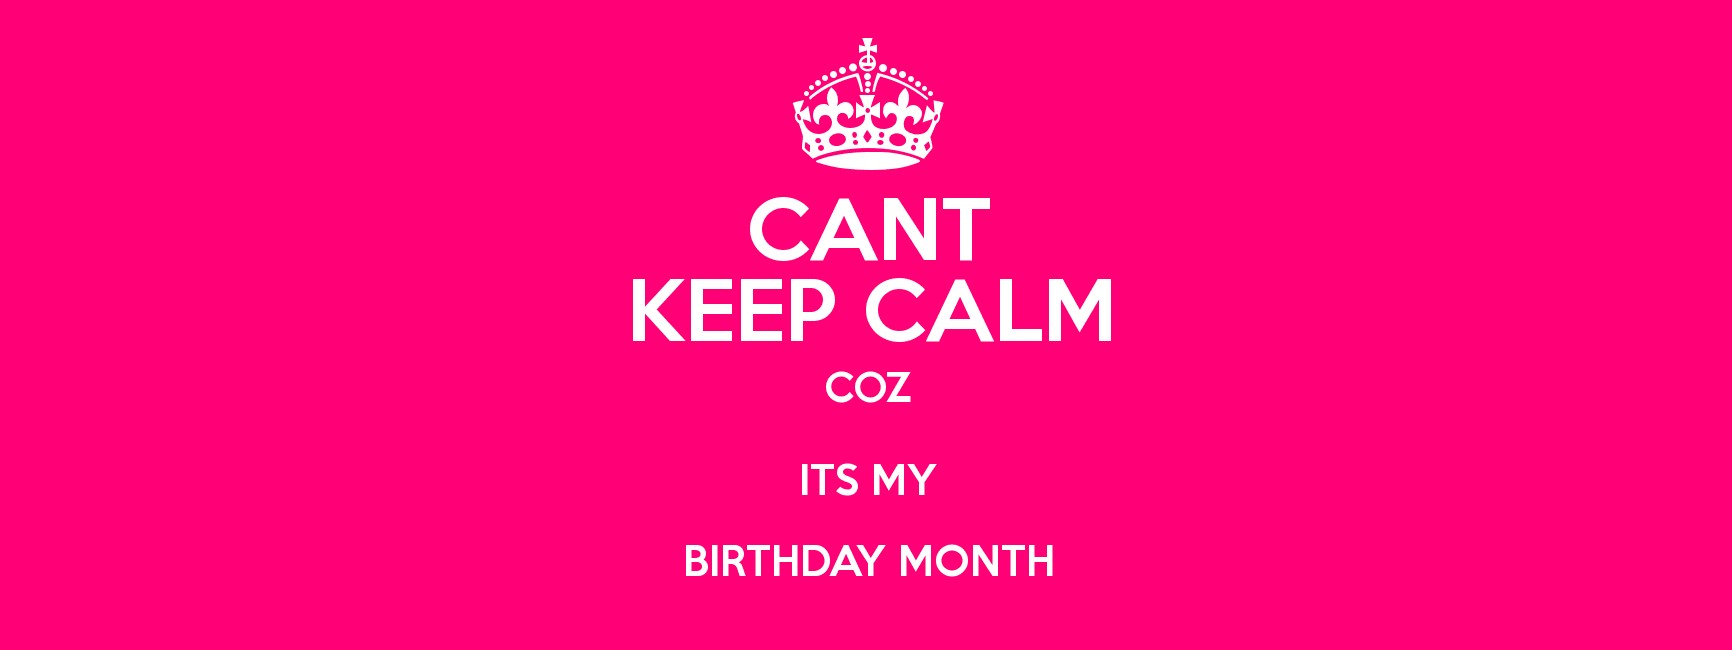 CANT KEEP CALM COZ ITS MY BIRTHDAY MONTH PosterBirthday Month Cover Photos